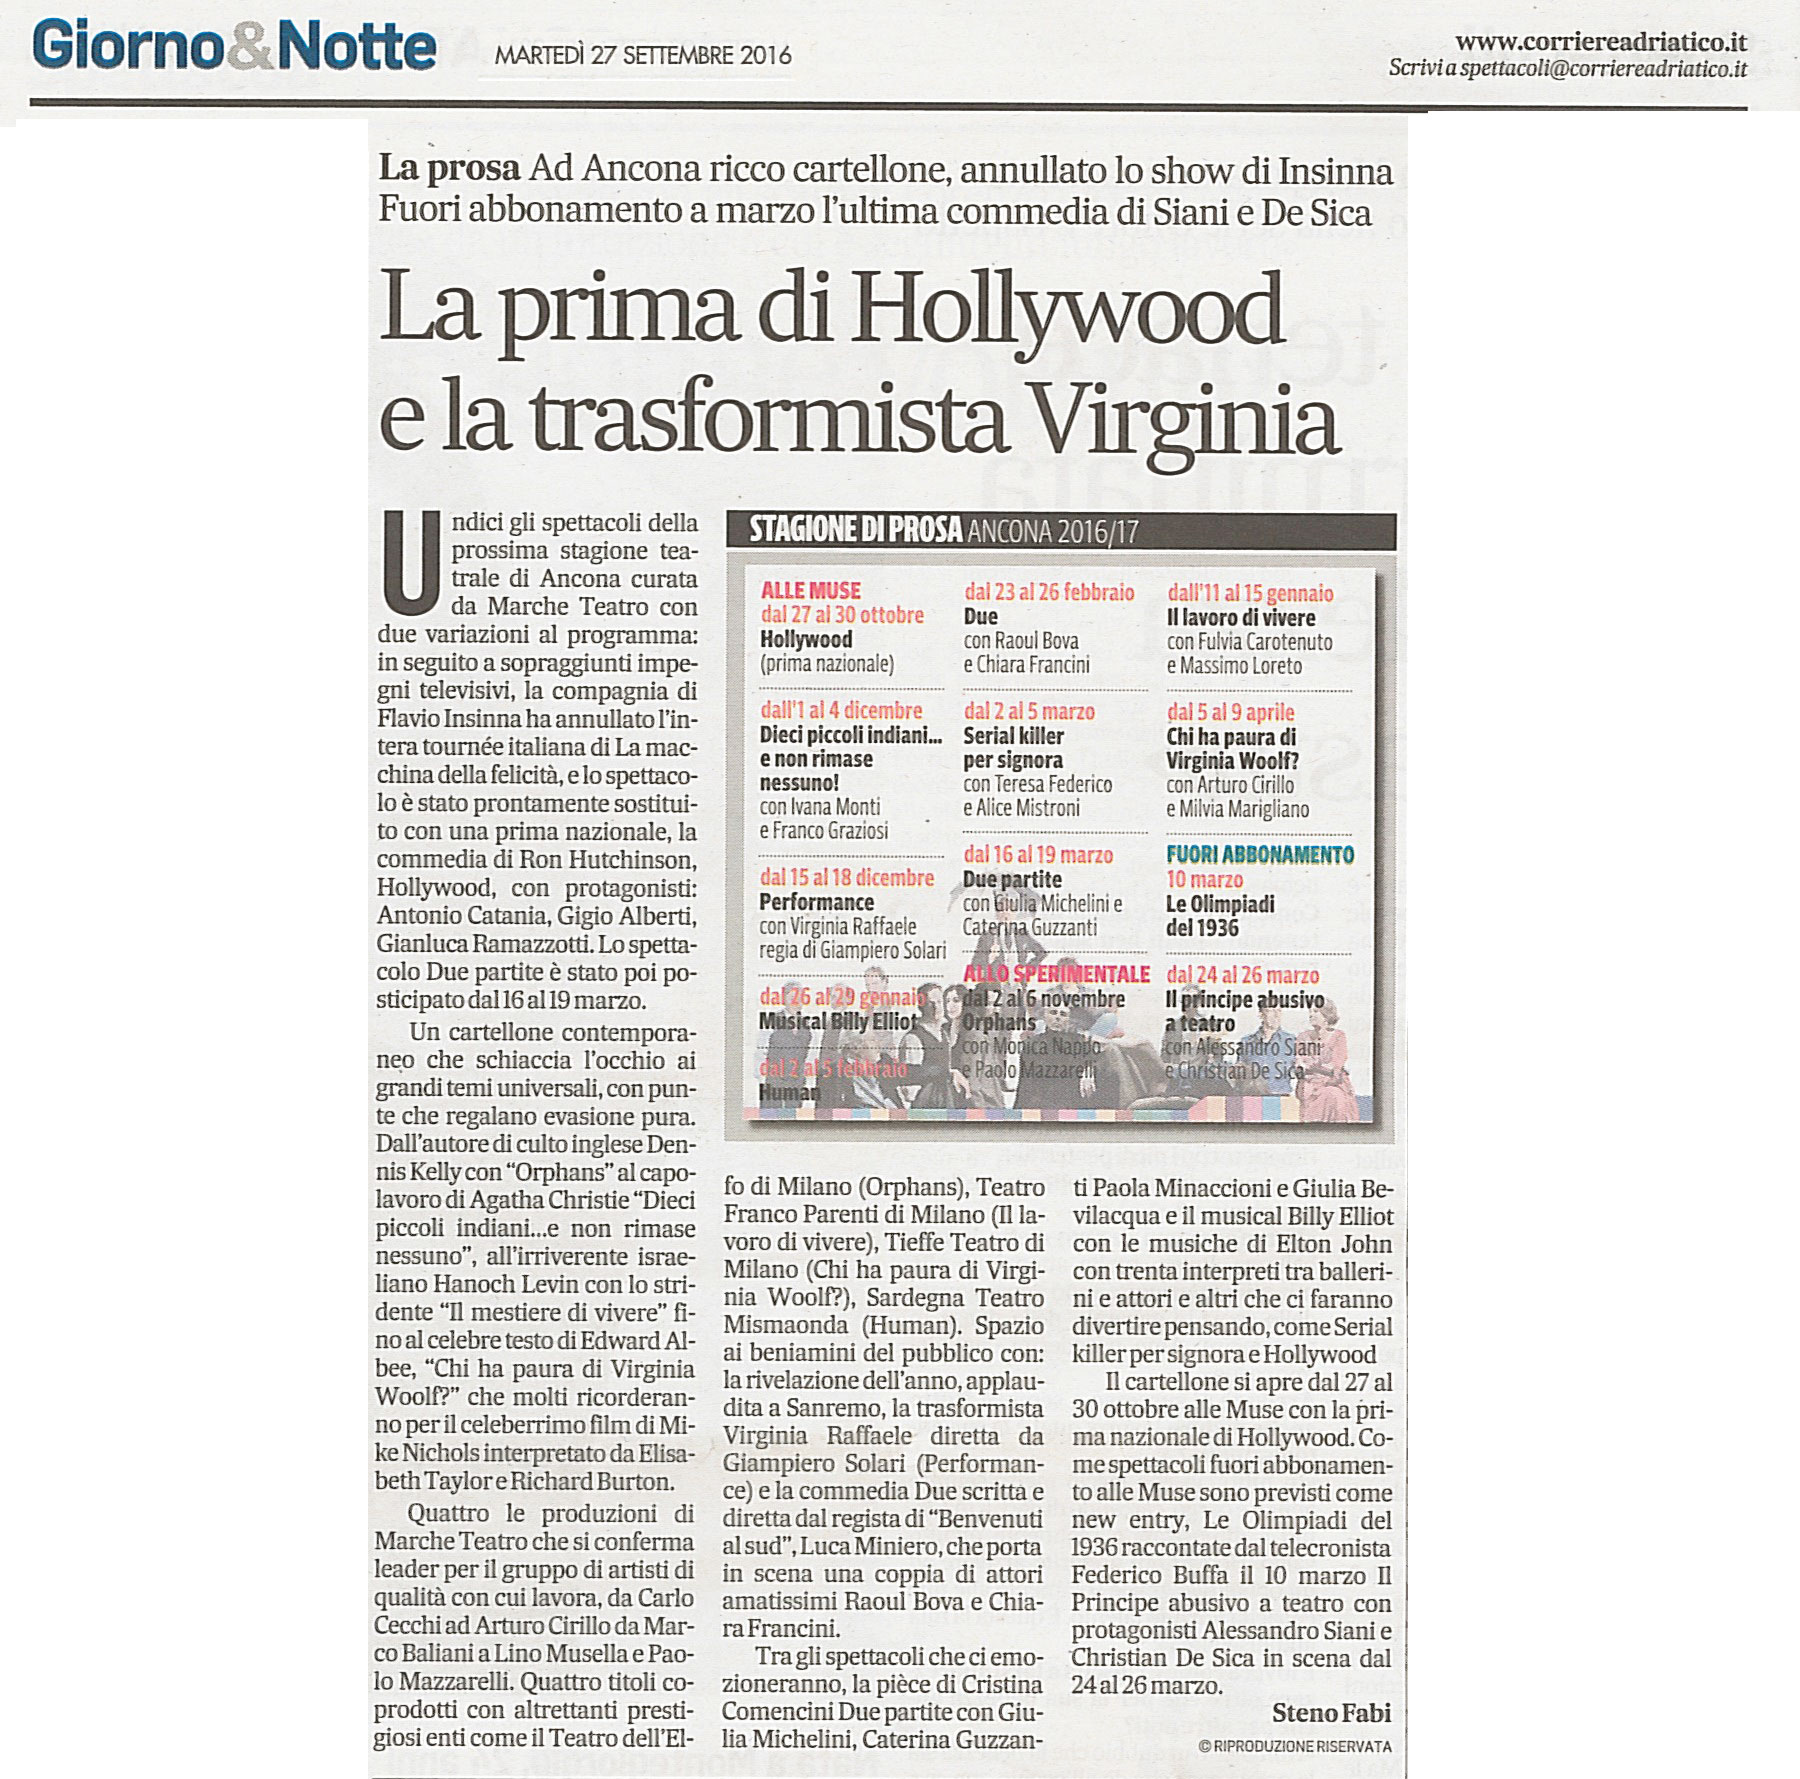 2016_09_27_la-prima-hollywood-e-la-trasformista-virginia_corriere-adriatico